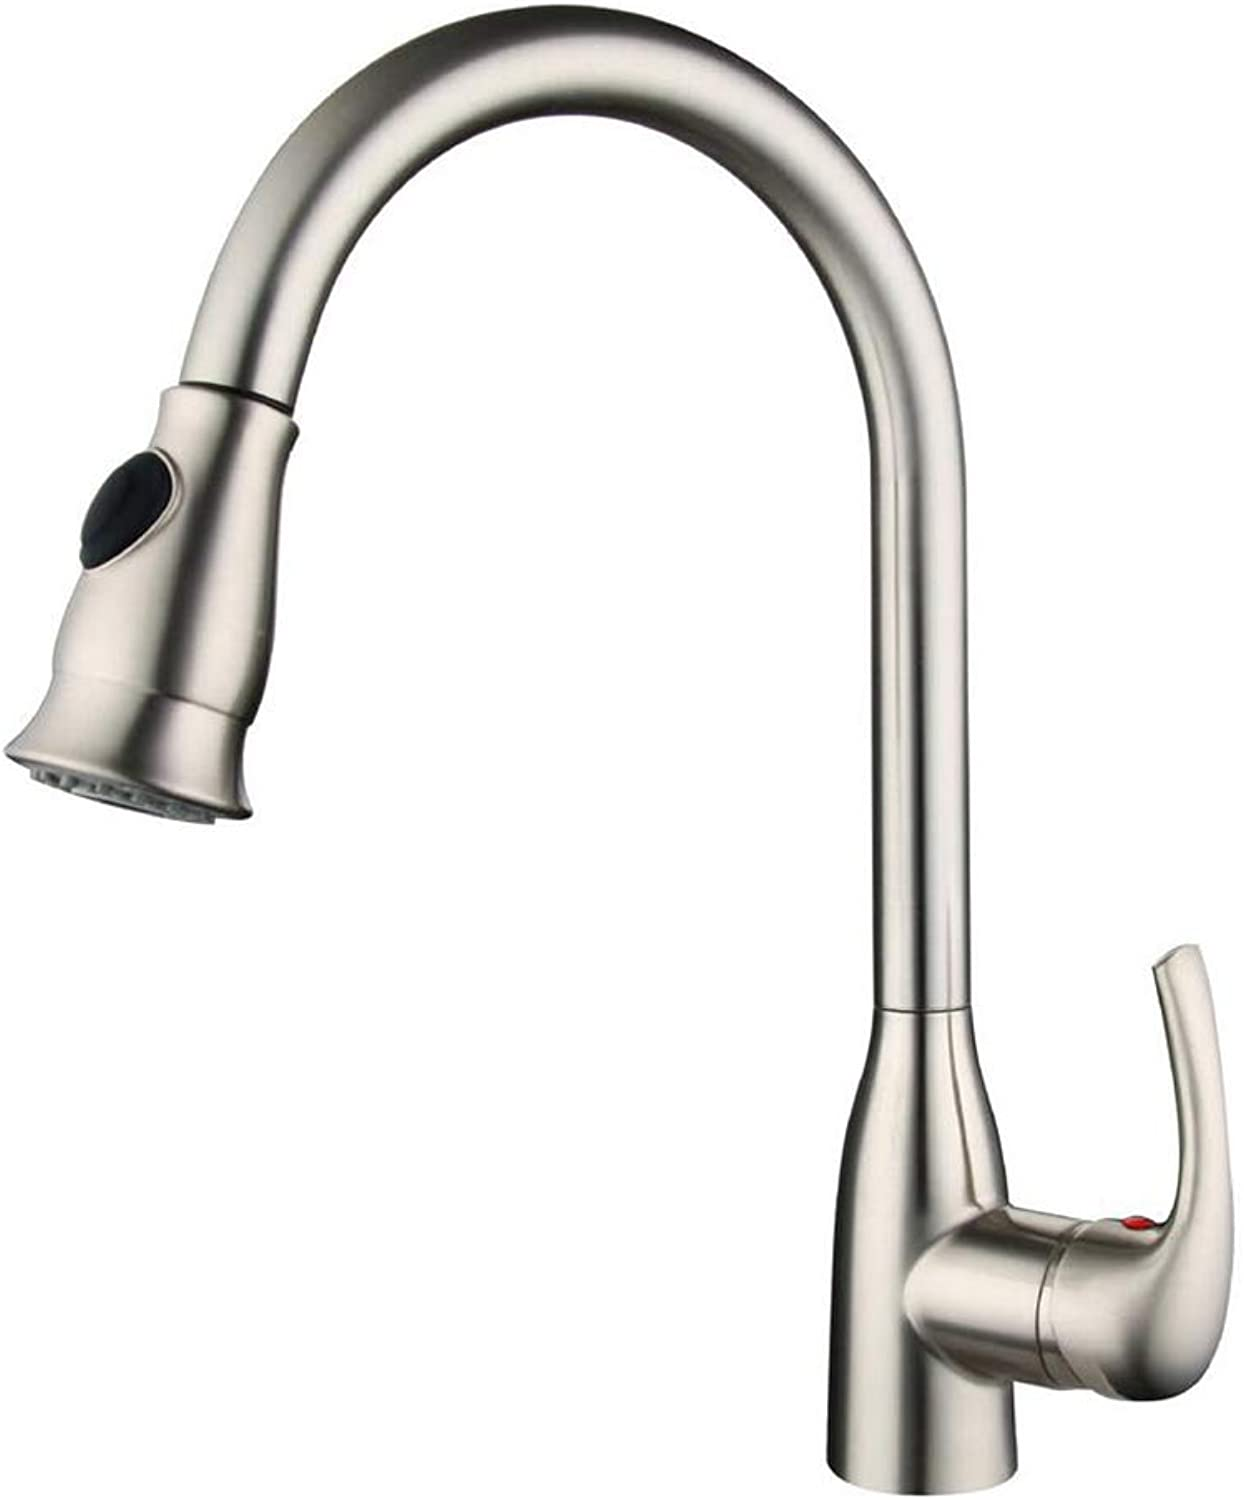 GAOXP Basin Faucet, Lead-free Faucet, Hot and Cold Kitchen Sink Telescopic redary Faucet, Single Handle High Arc Brushed Nickel Pull Out Kitchen Faucet, Electroplated Brushed Copper Faucet